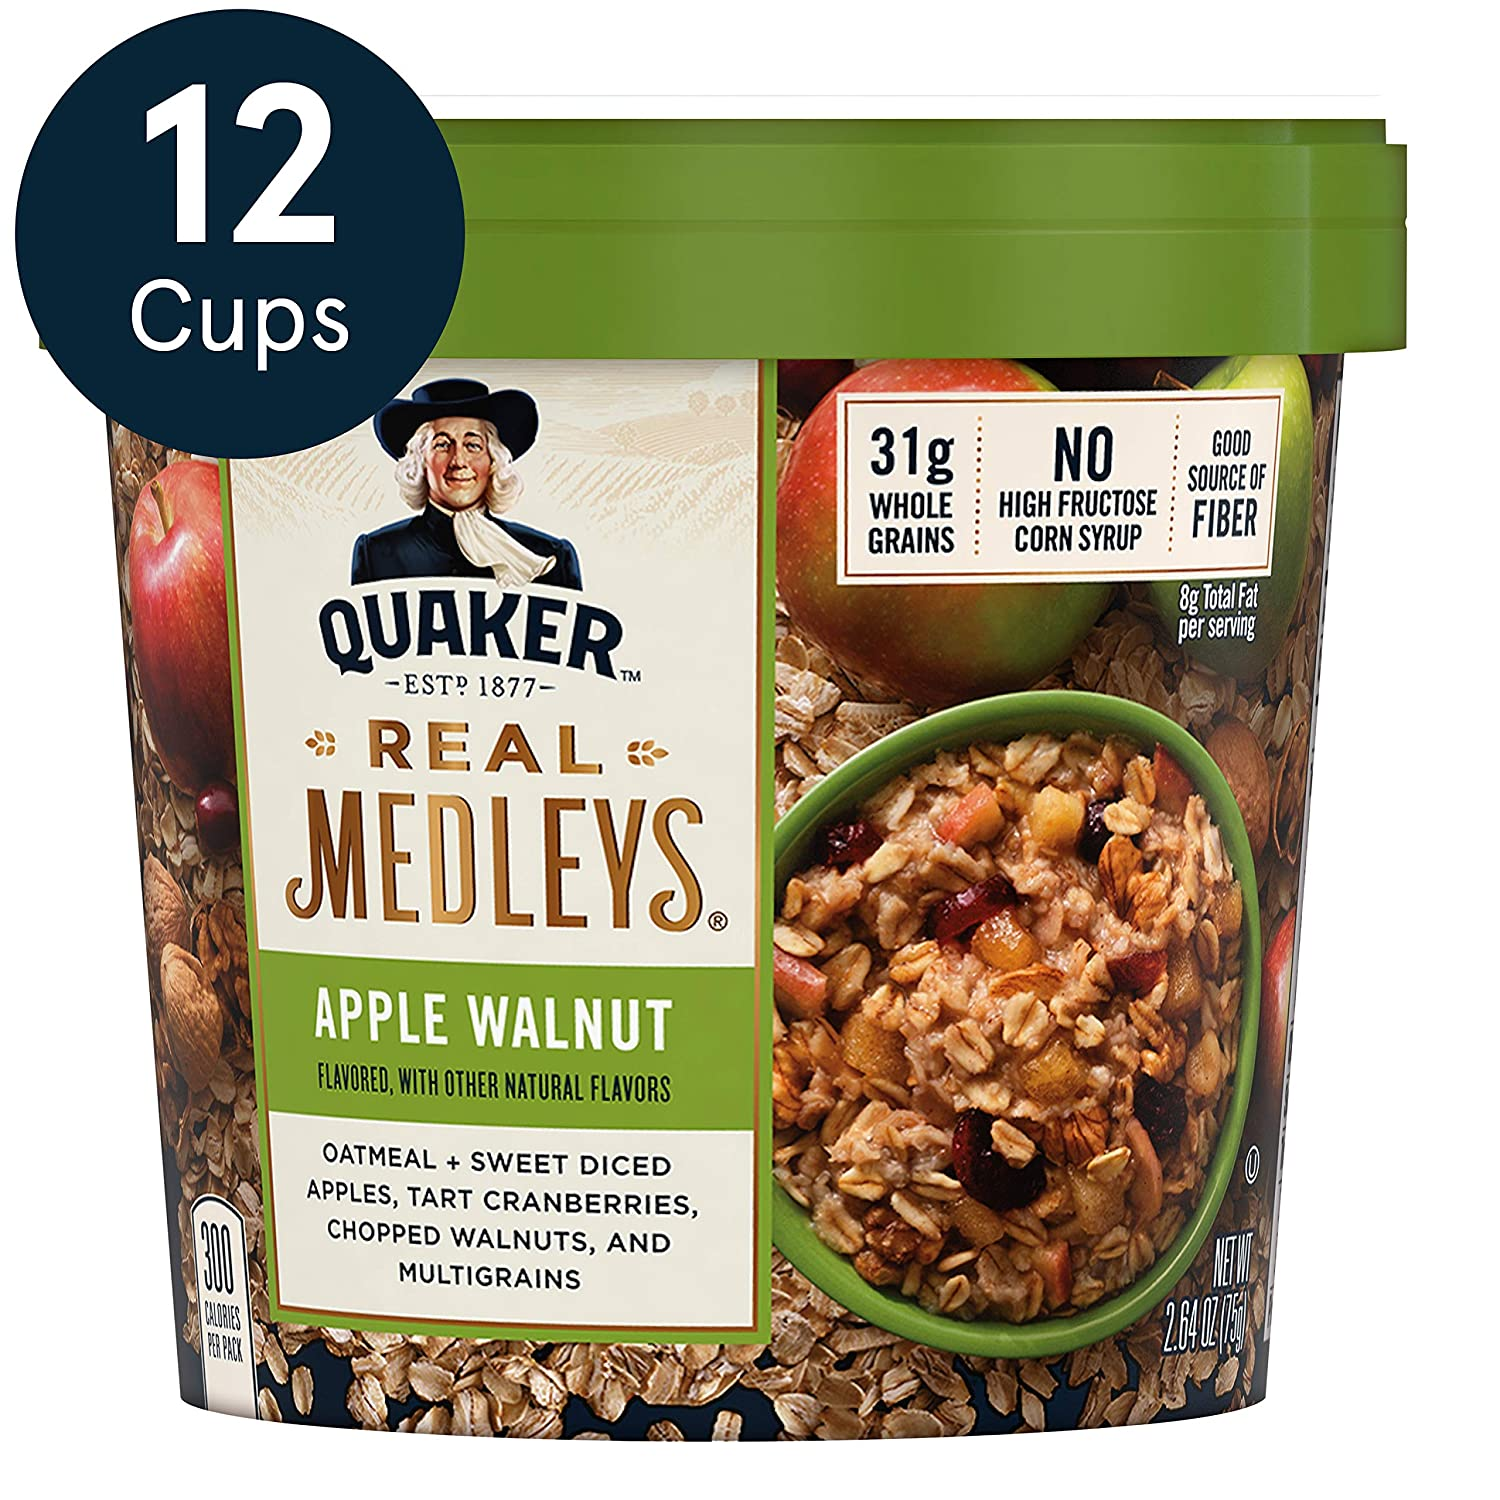 Quaker oatmeal. Come discover 23 Smart Quarantine Pantry Supplies for Social Isolation I Ordered. #quarantinesupplies #pandemic #suppliesforquarantine #covid19